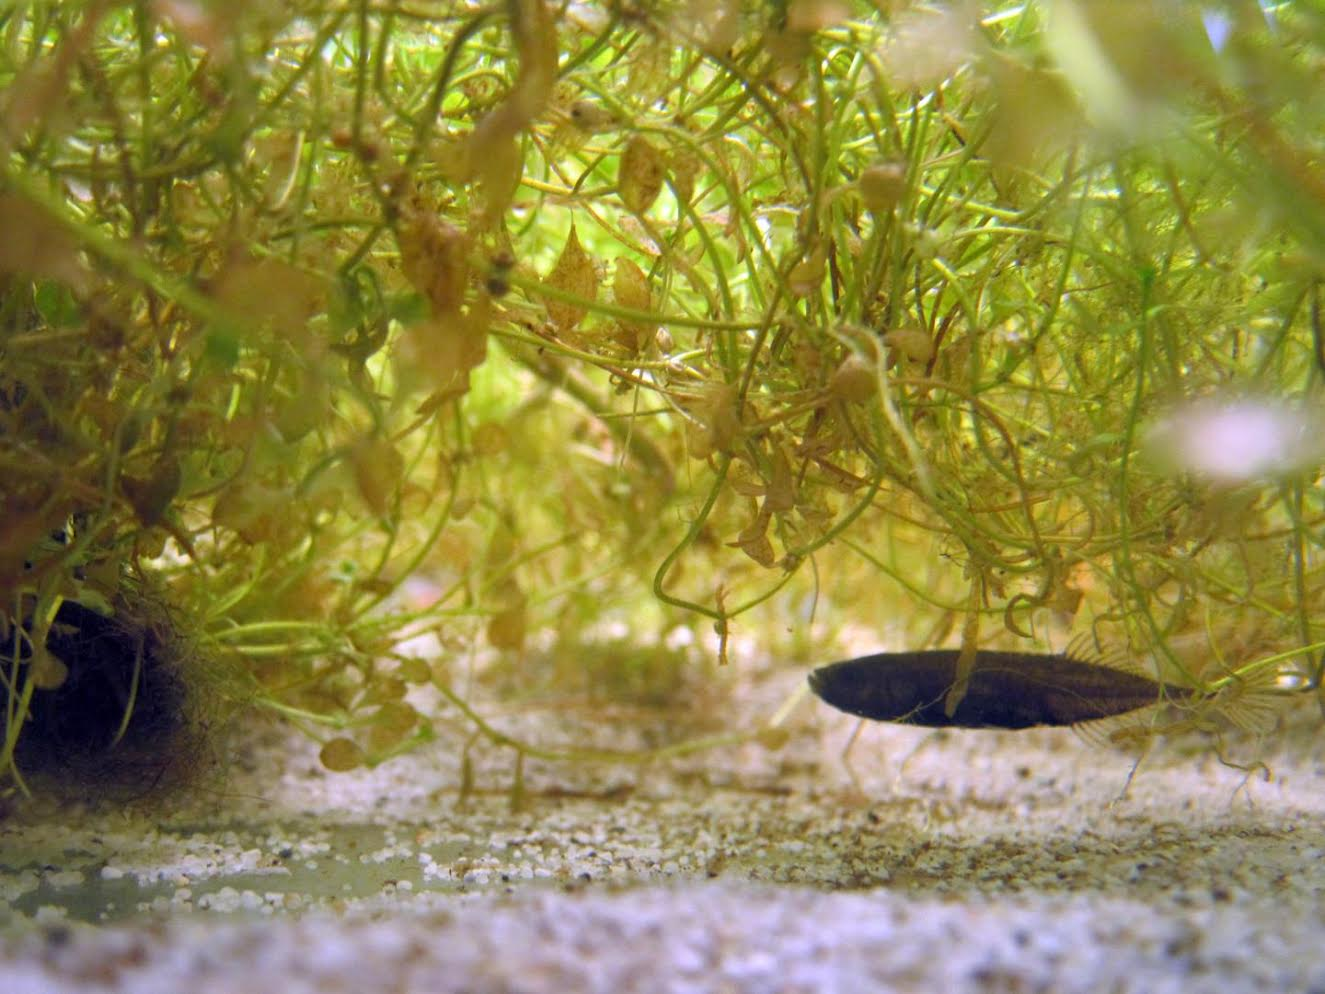 A stickleback with its nest. Credit: Fwals